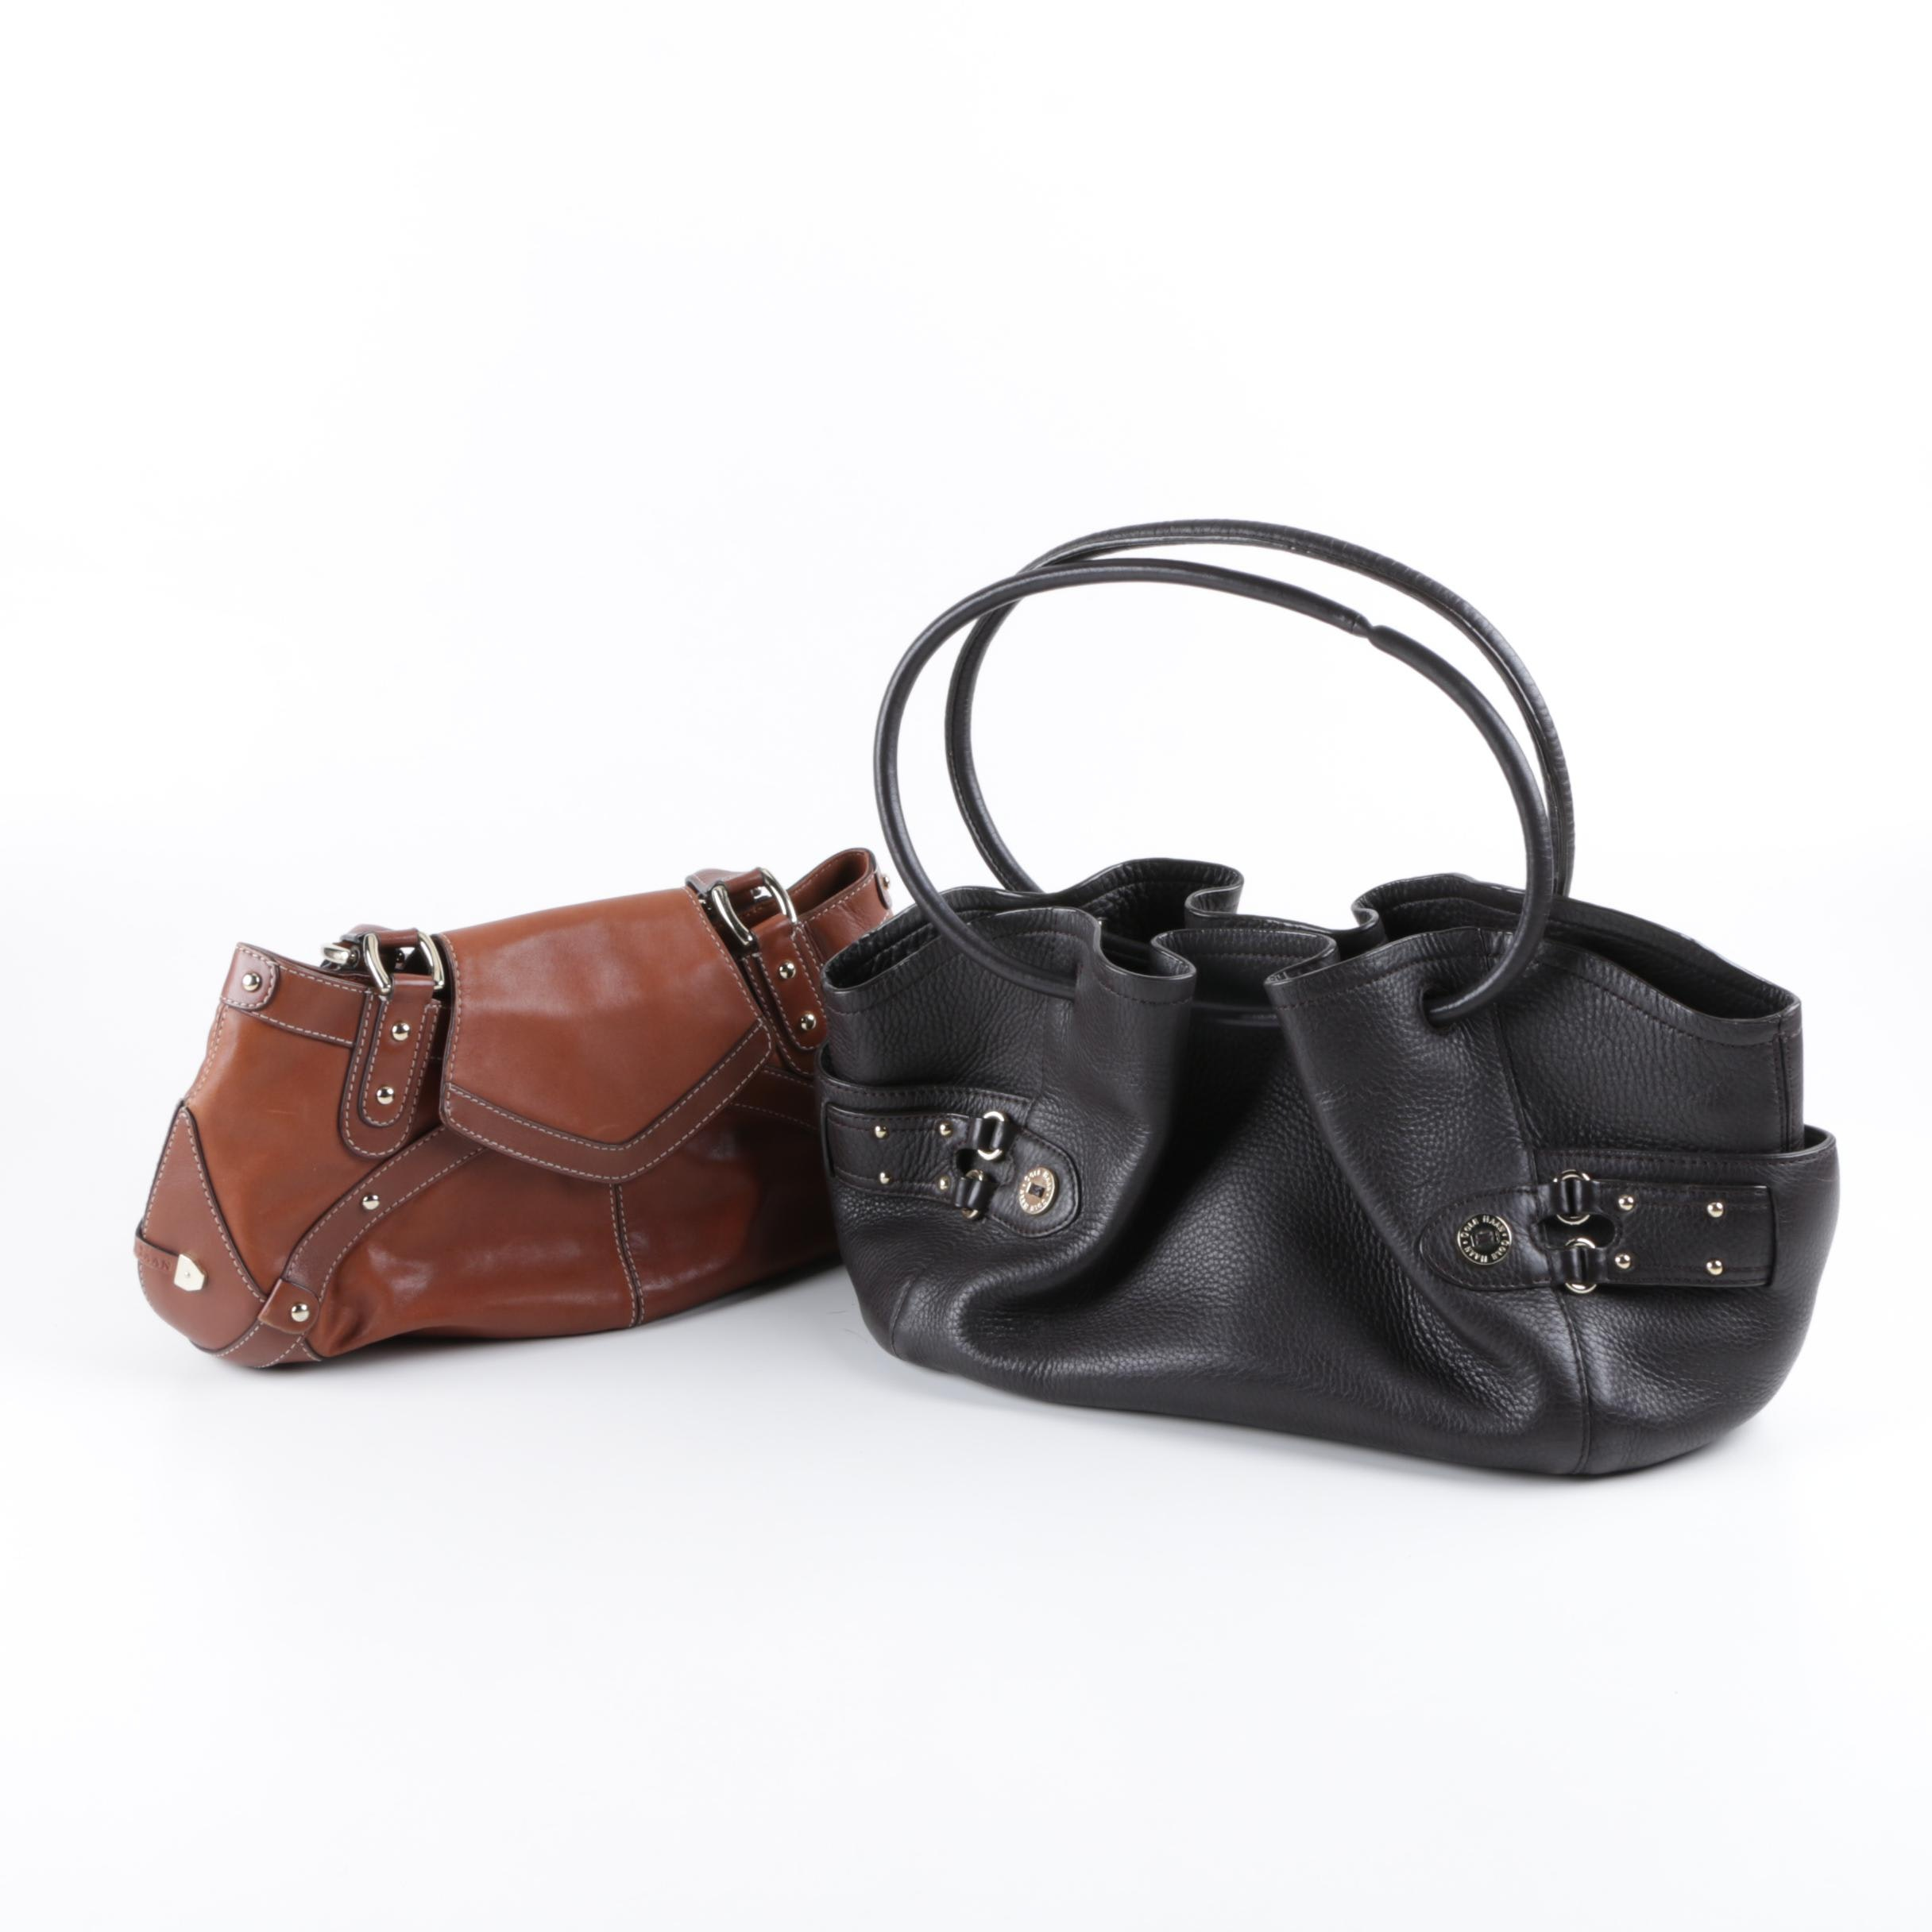 Cole Haan Paige and Village Classics Handbags in Brown and Black Leather